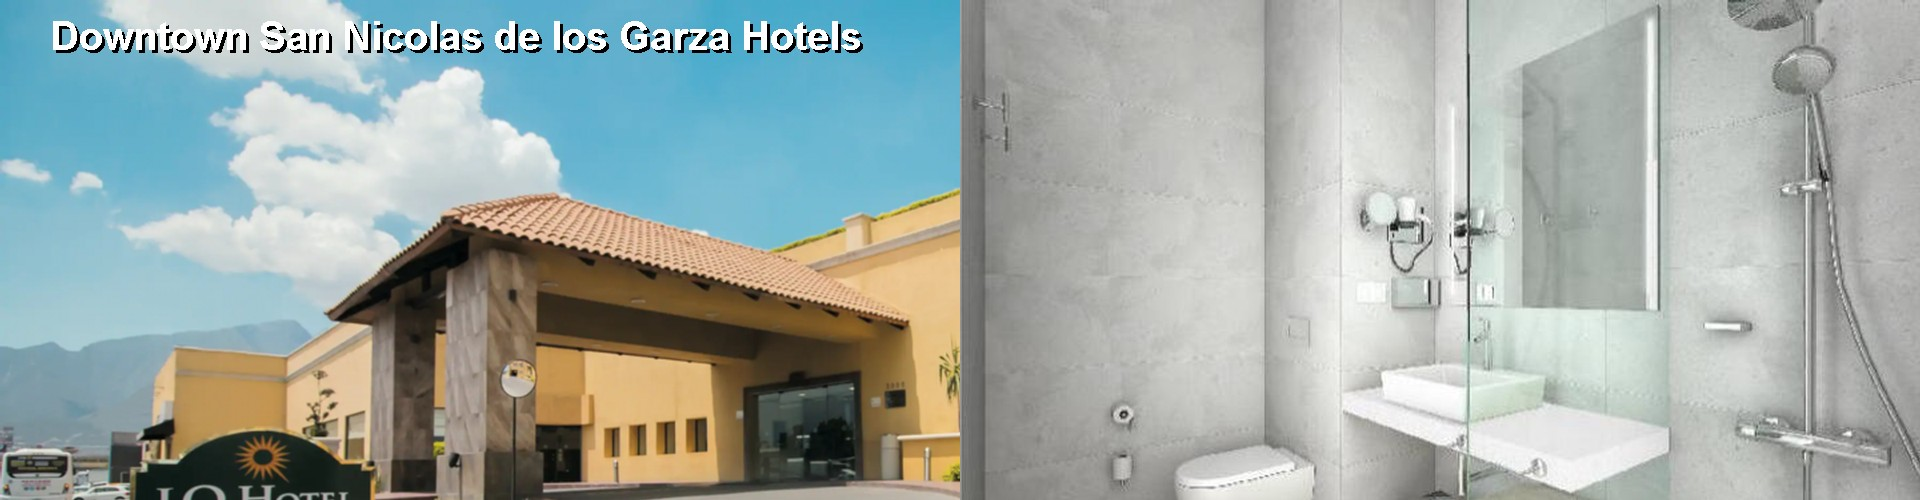 5 Best Hotels near Downtown San Nicolas de los Garza